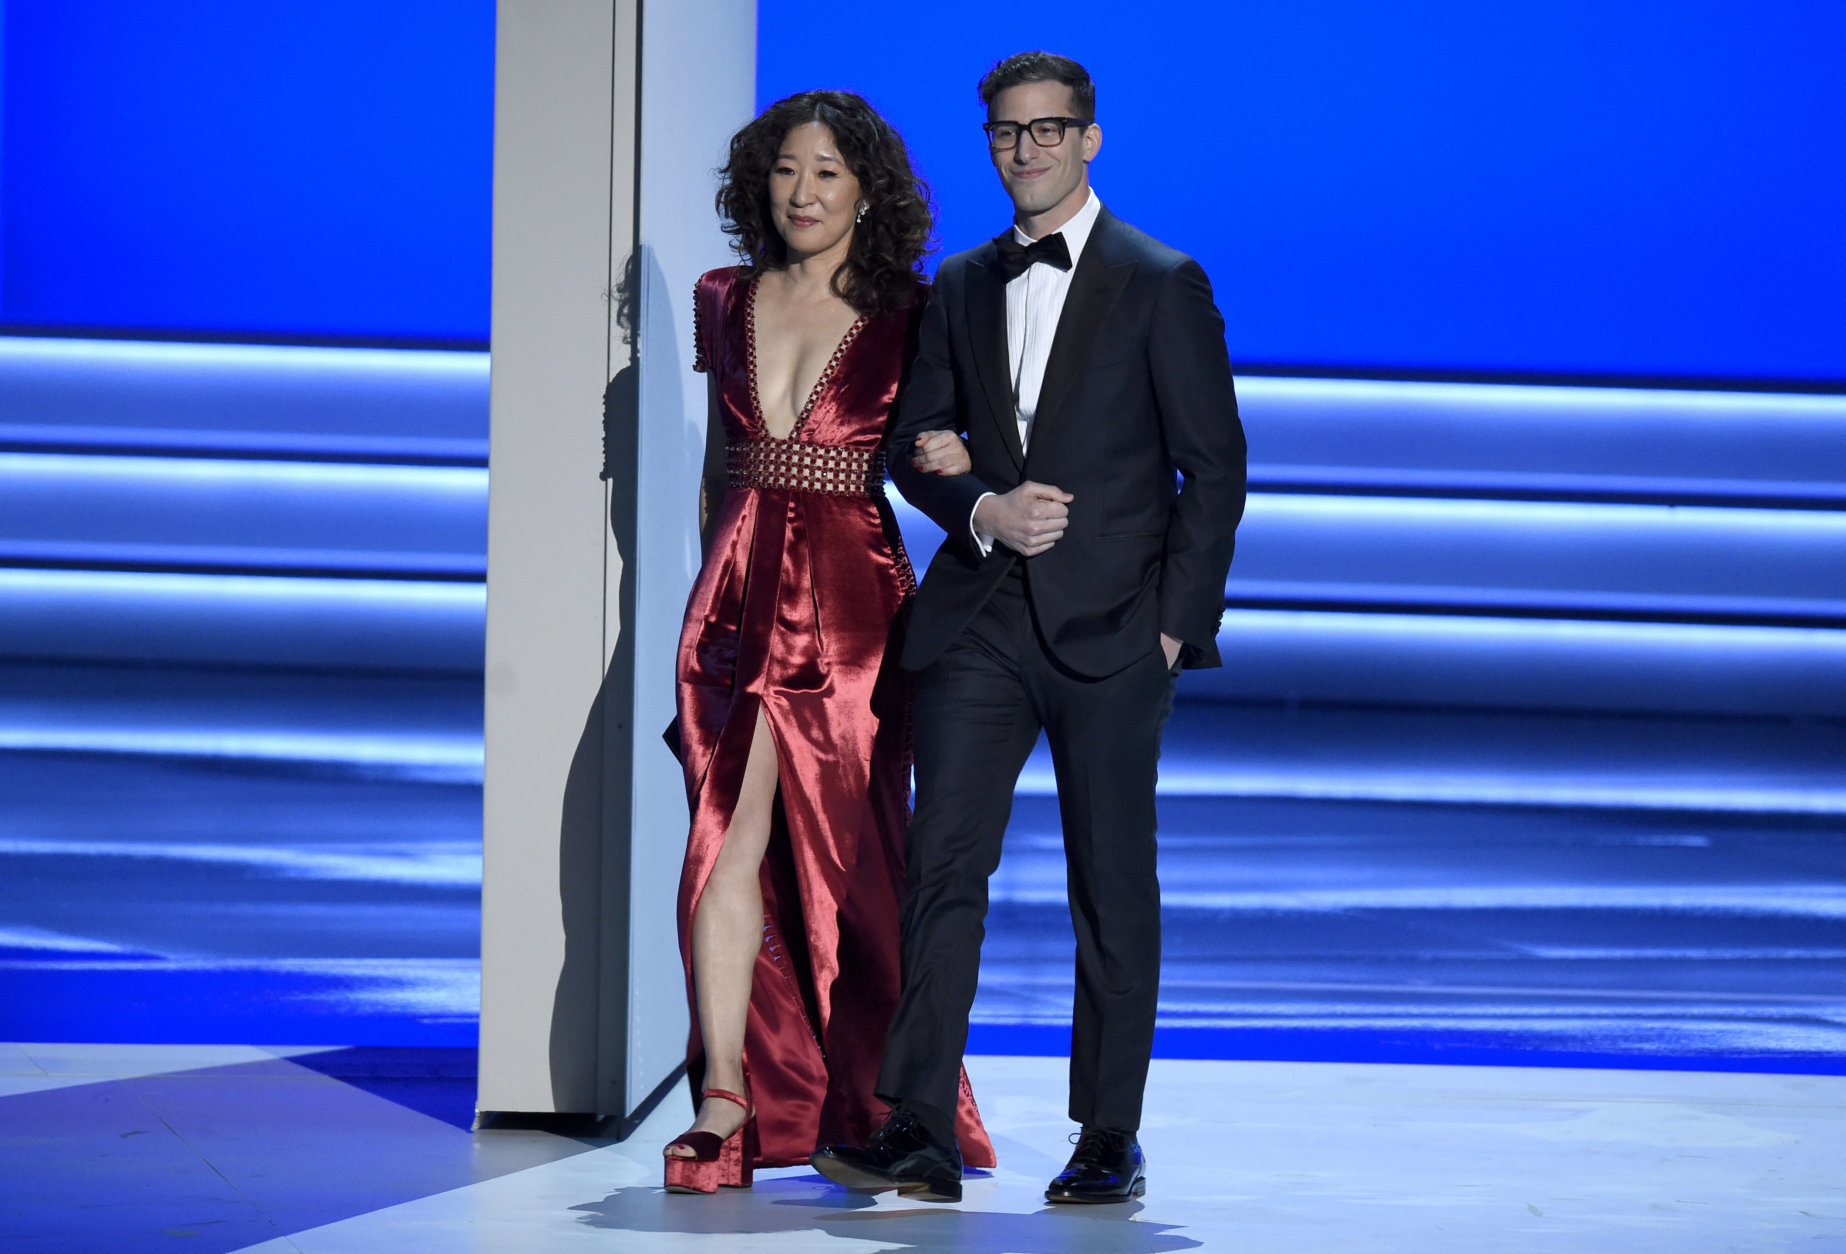 Sandra Oh, left, and Andy Samberg appear on stage to present the award for outstanding directing for a comedy series at the 70th Primetime Emmy Awards on Monday, Sept. 17, 2018, at the Microsoft Theater in Los Angeles. (Photo by Chris Pizzello/Invision/AP)